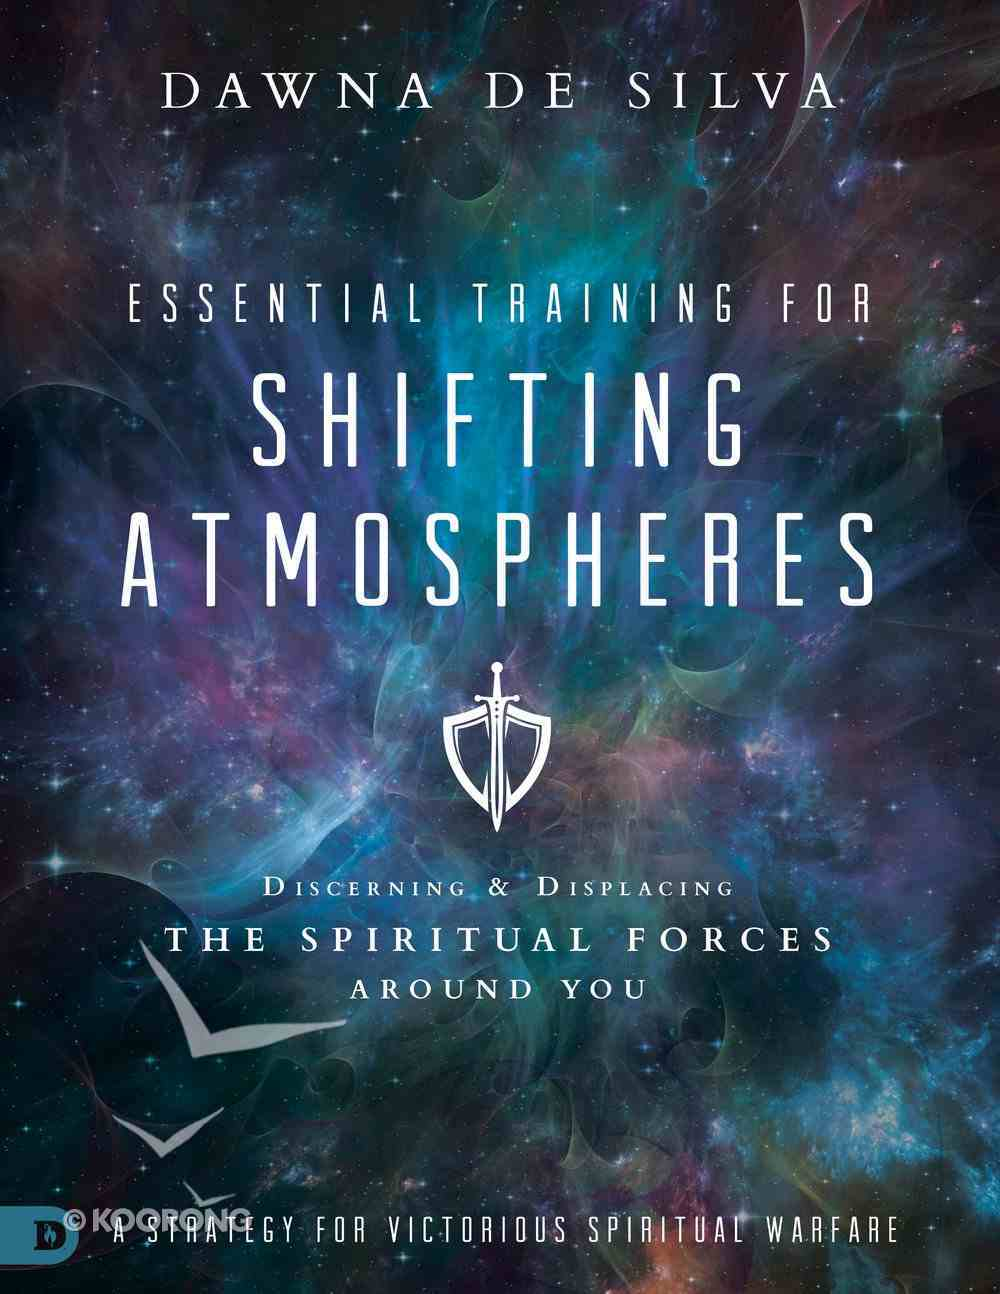 Essential Training For Shifting Atmospheres: Discerning and Displacing the Spiritual Forces Around You Paperback